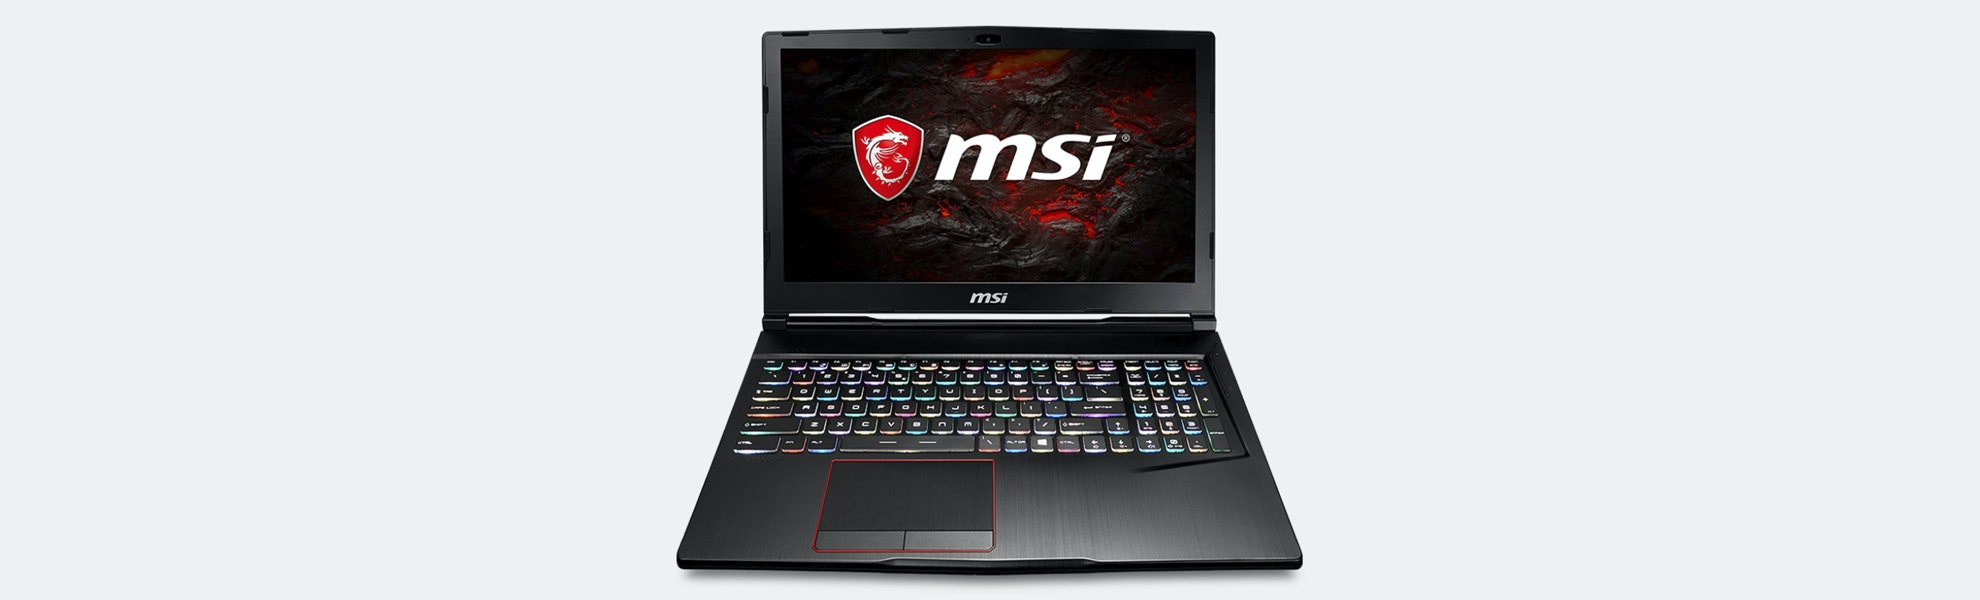 MSI GE63VR Raider-213 Gaming Laptop